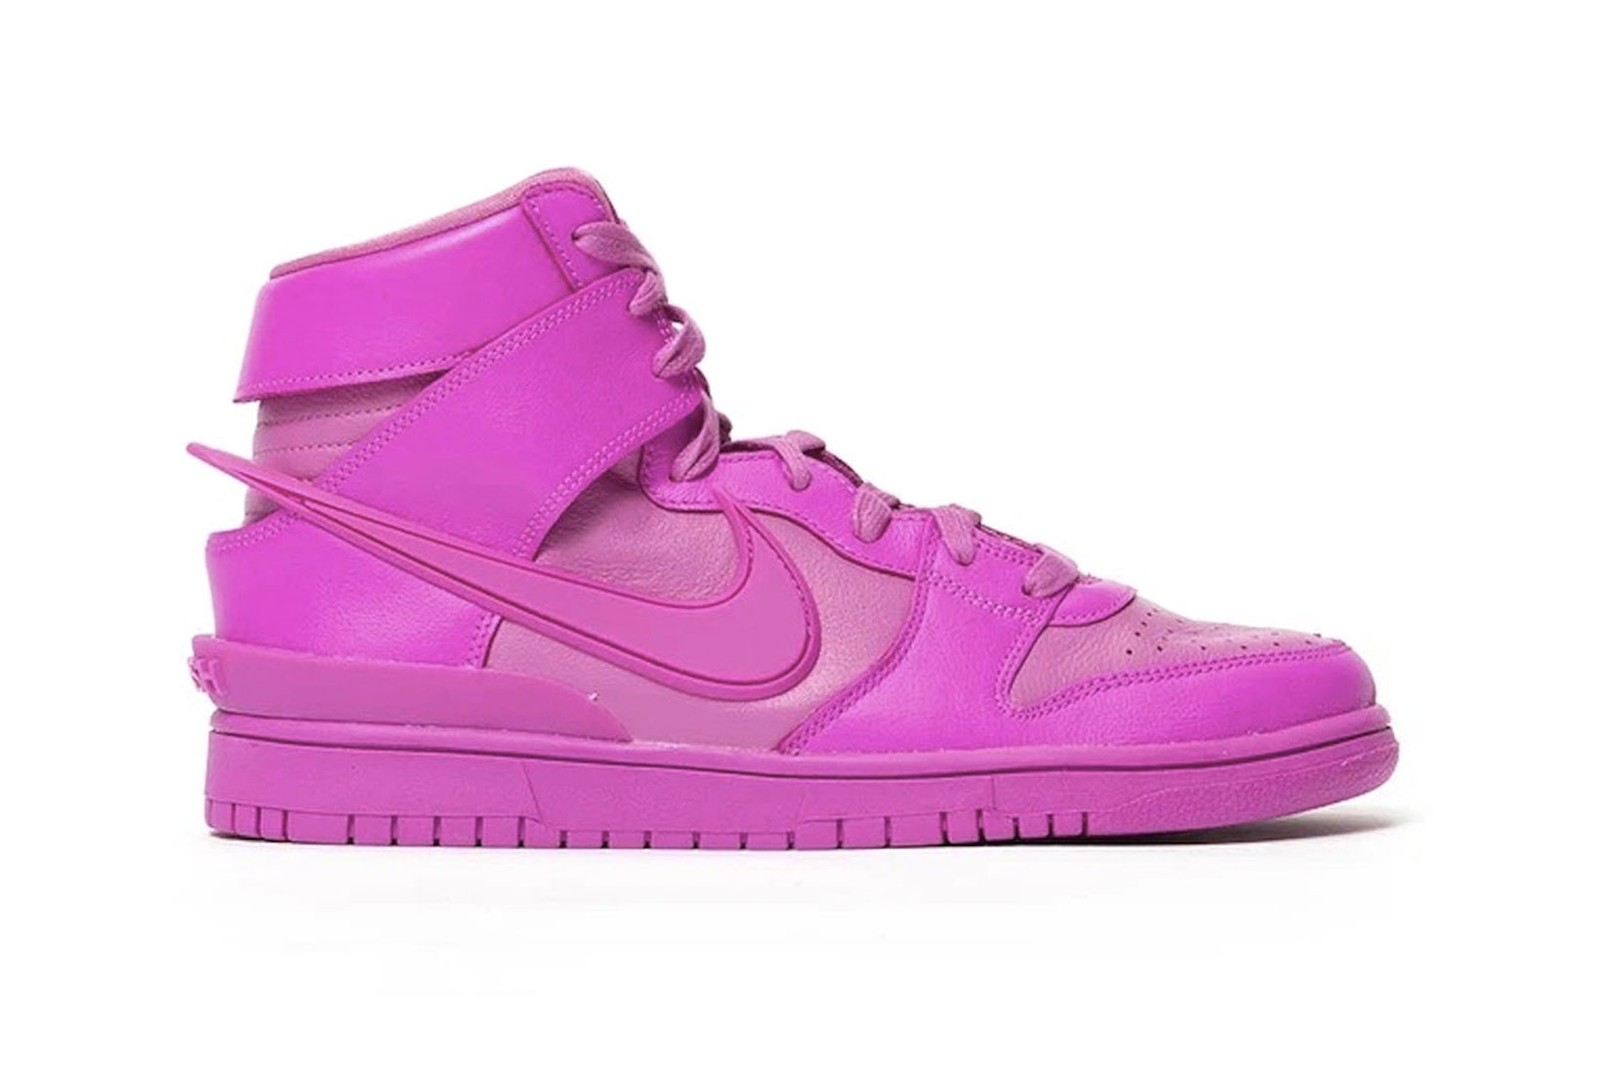 ambush nike dunk high lethal pink active cosmic fuchsia collaboration yoon ahn sneakers on-foot look